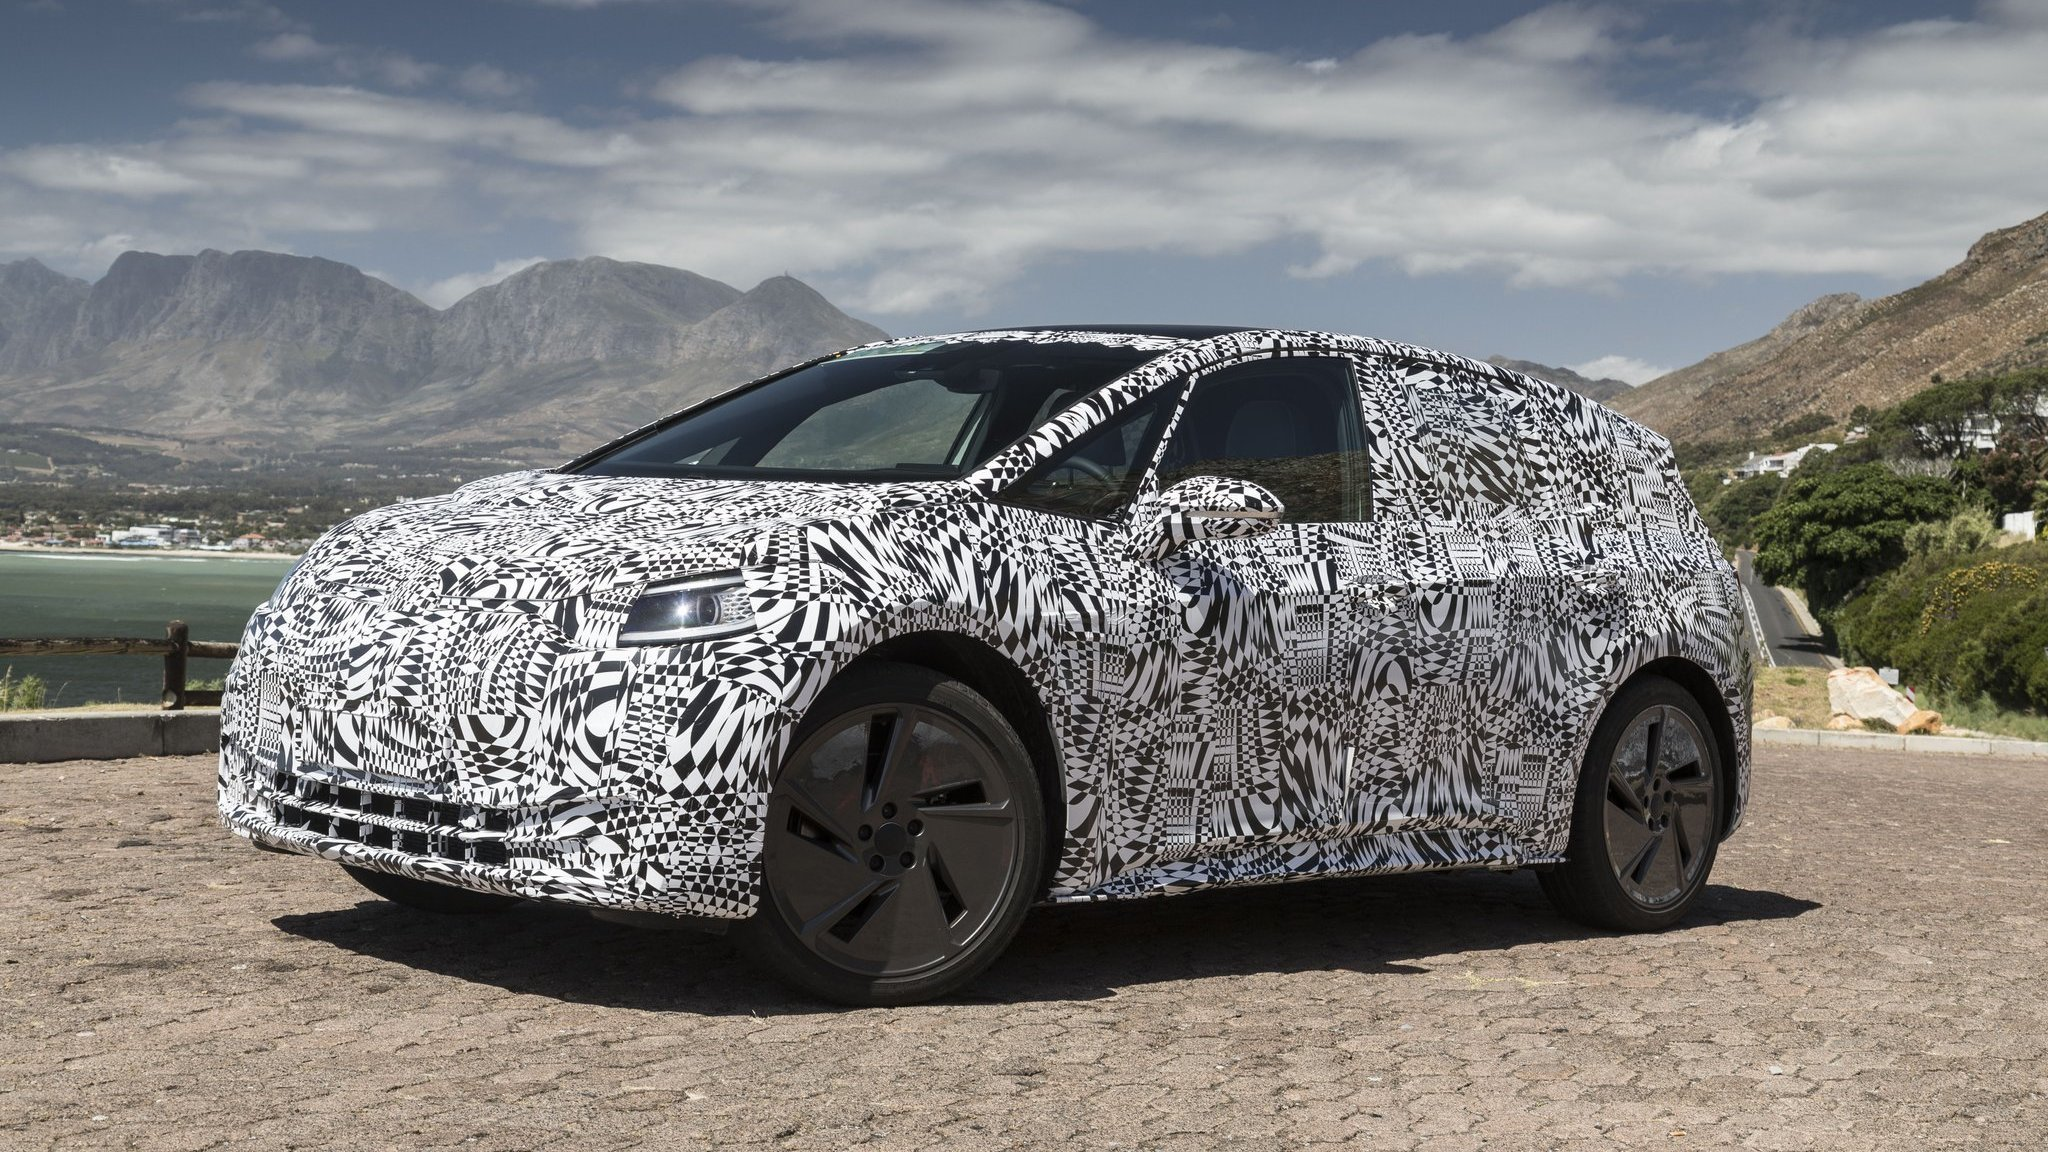 Volkswagen-ID-Hatchback-spy-photos-1 (2)